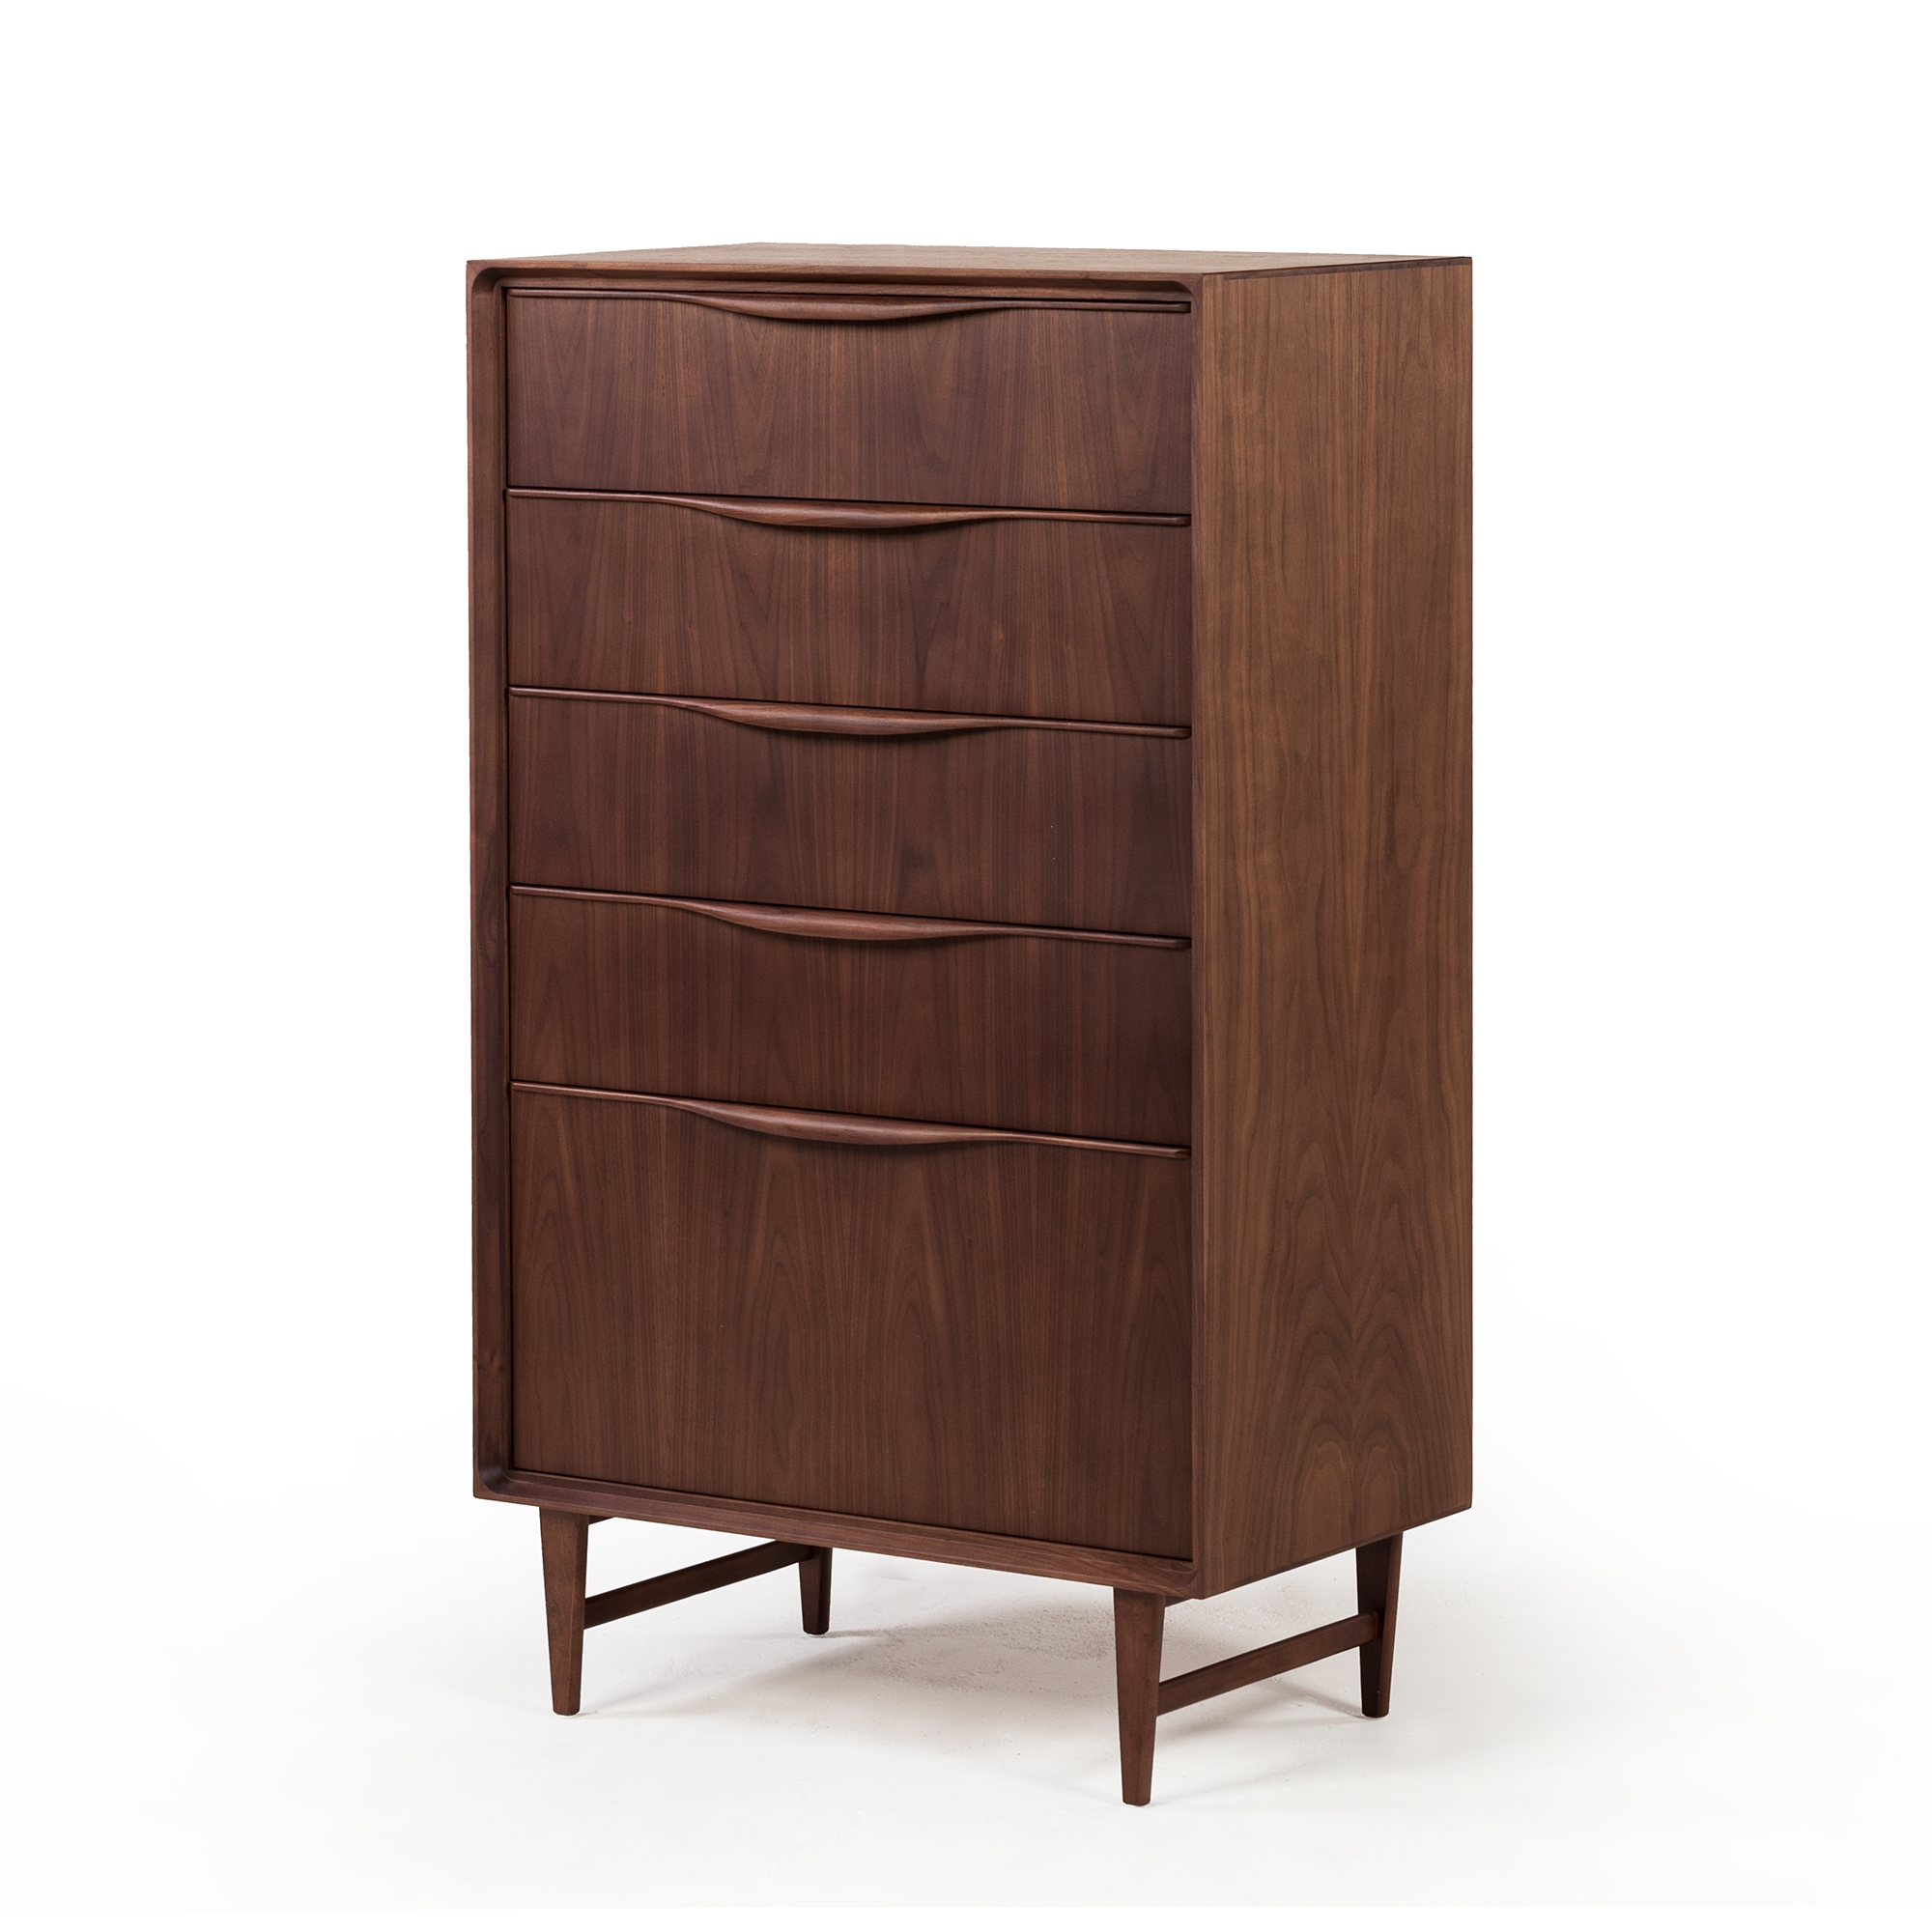 Baxter Mid Century Modern Tall Boy Dresser The Khazana Home Austin Furniture